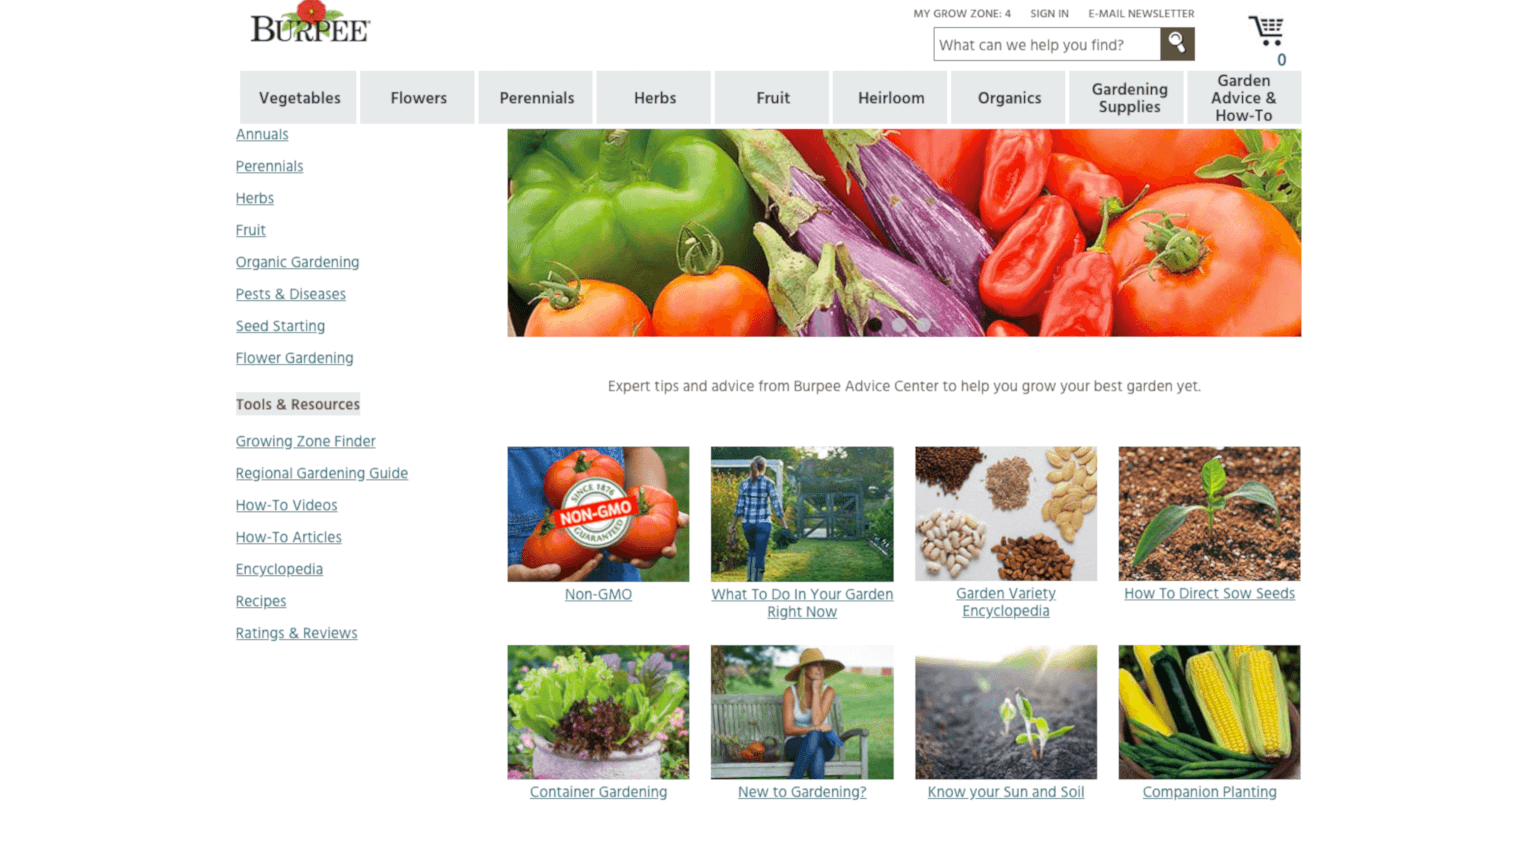 Burpee main blog page navigation about gardening